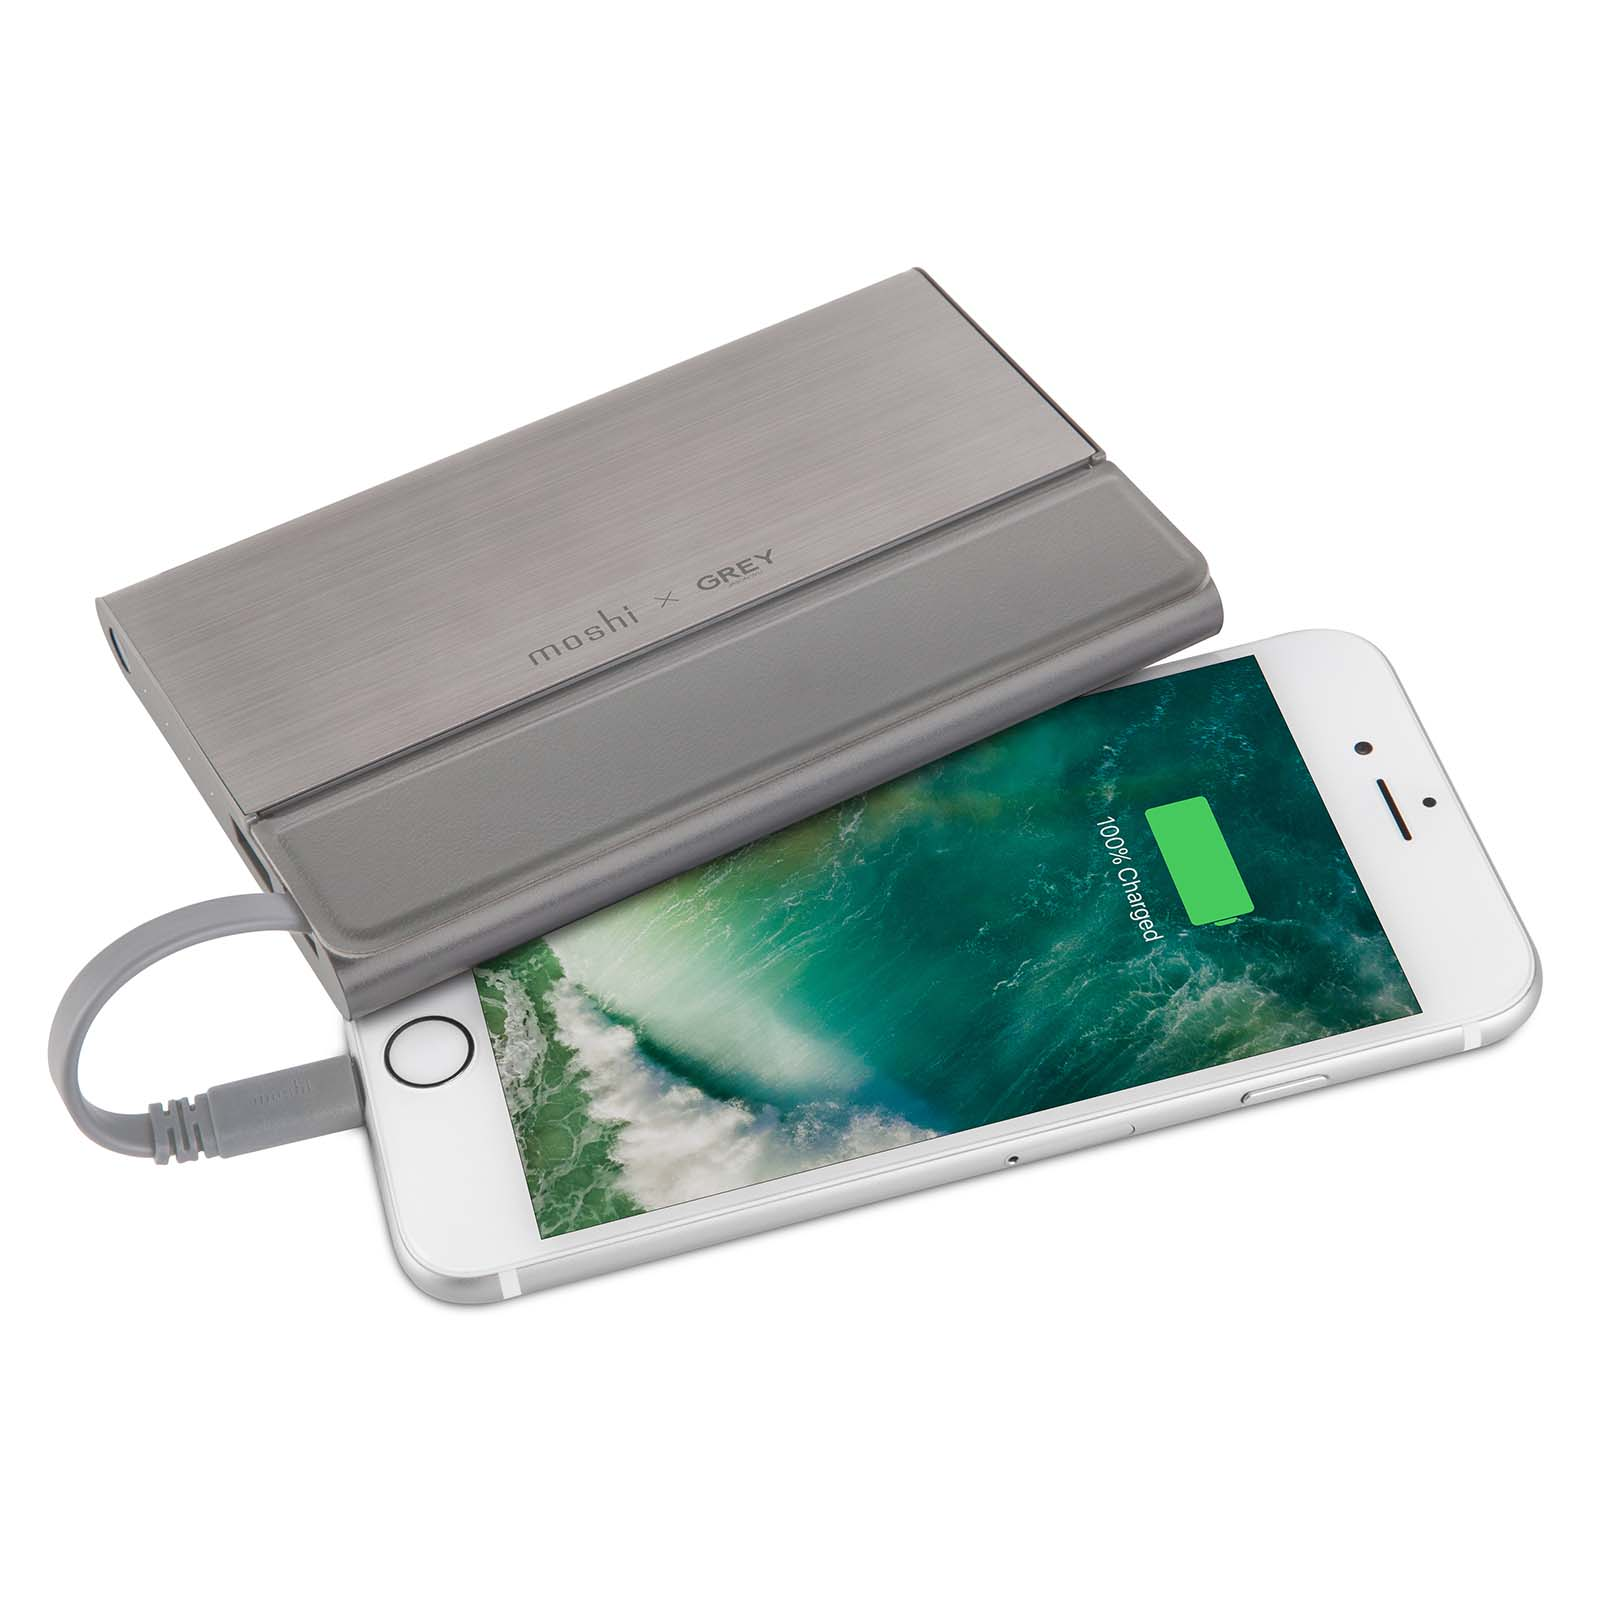 IonBank 5K Portable Battery-2-thumbnail